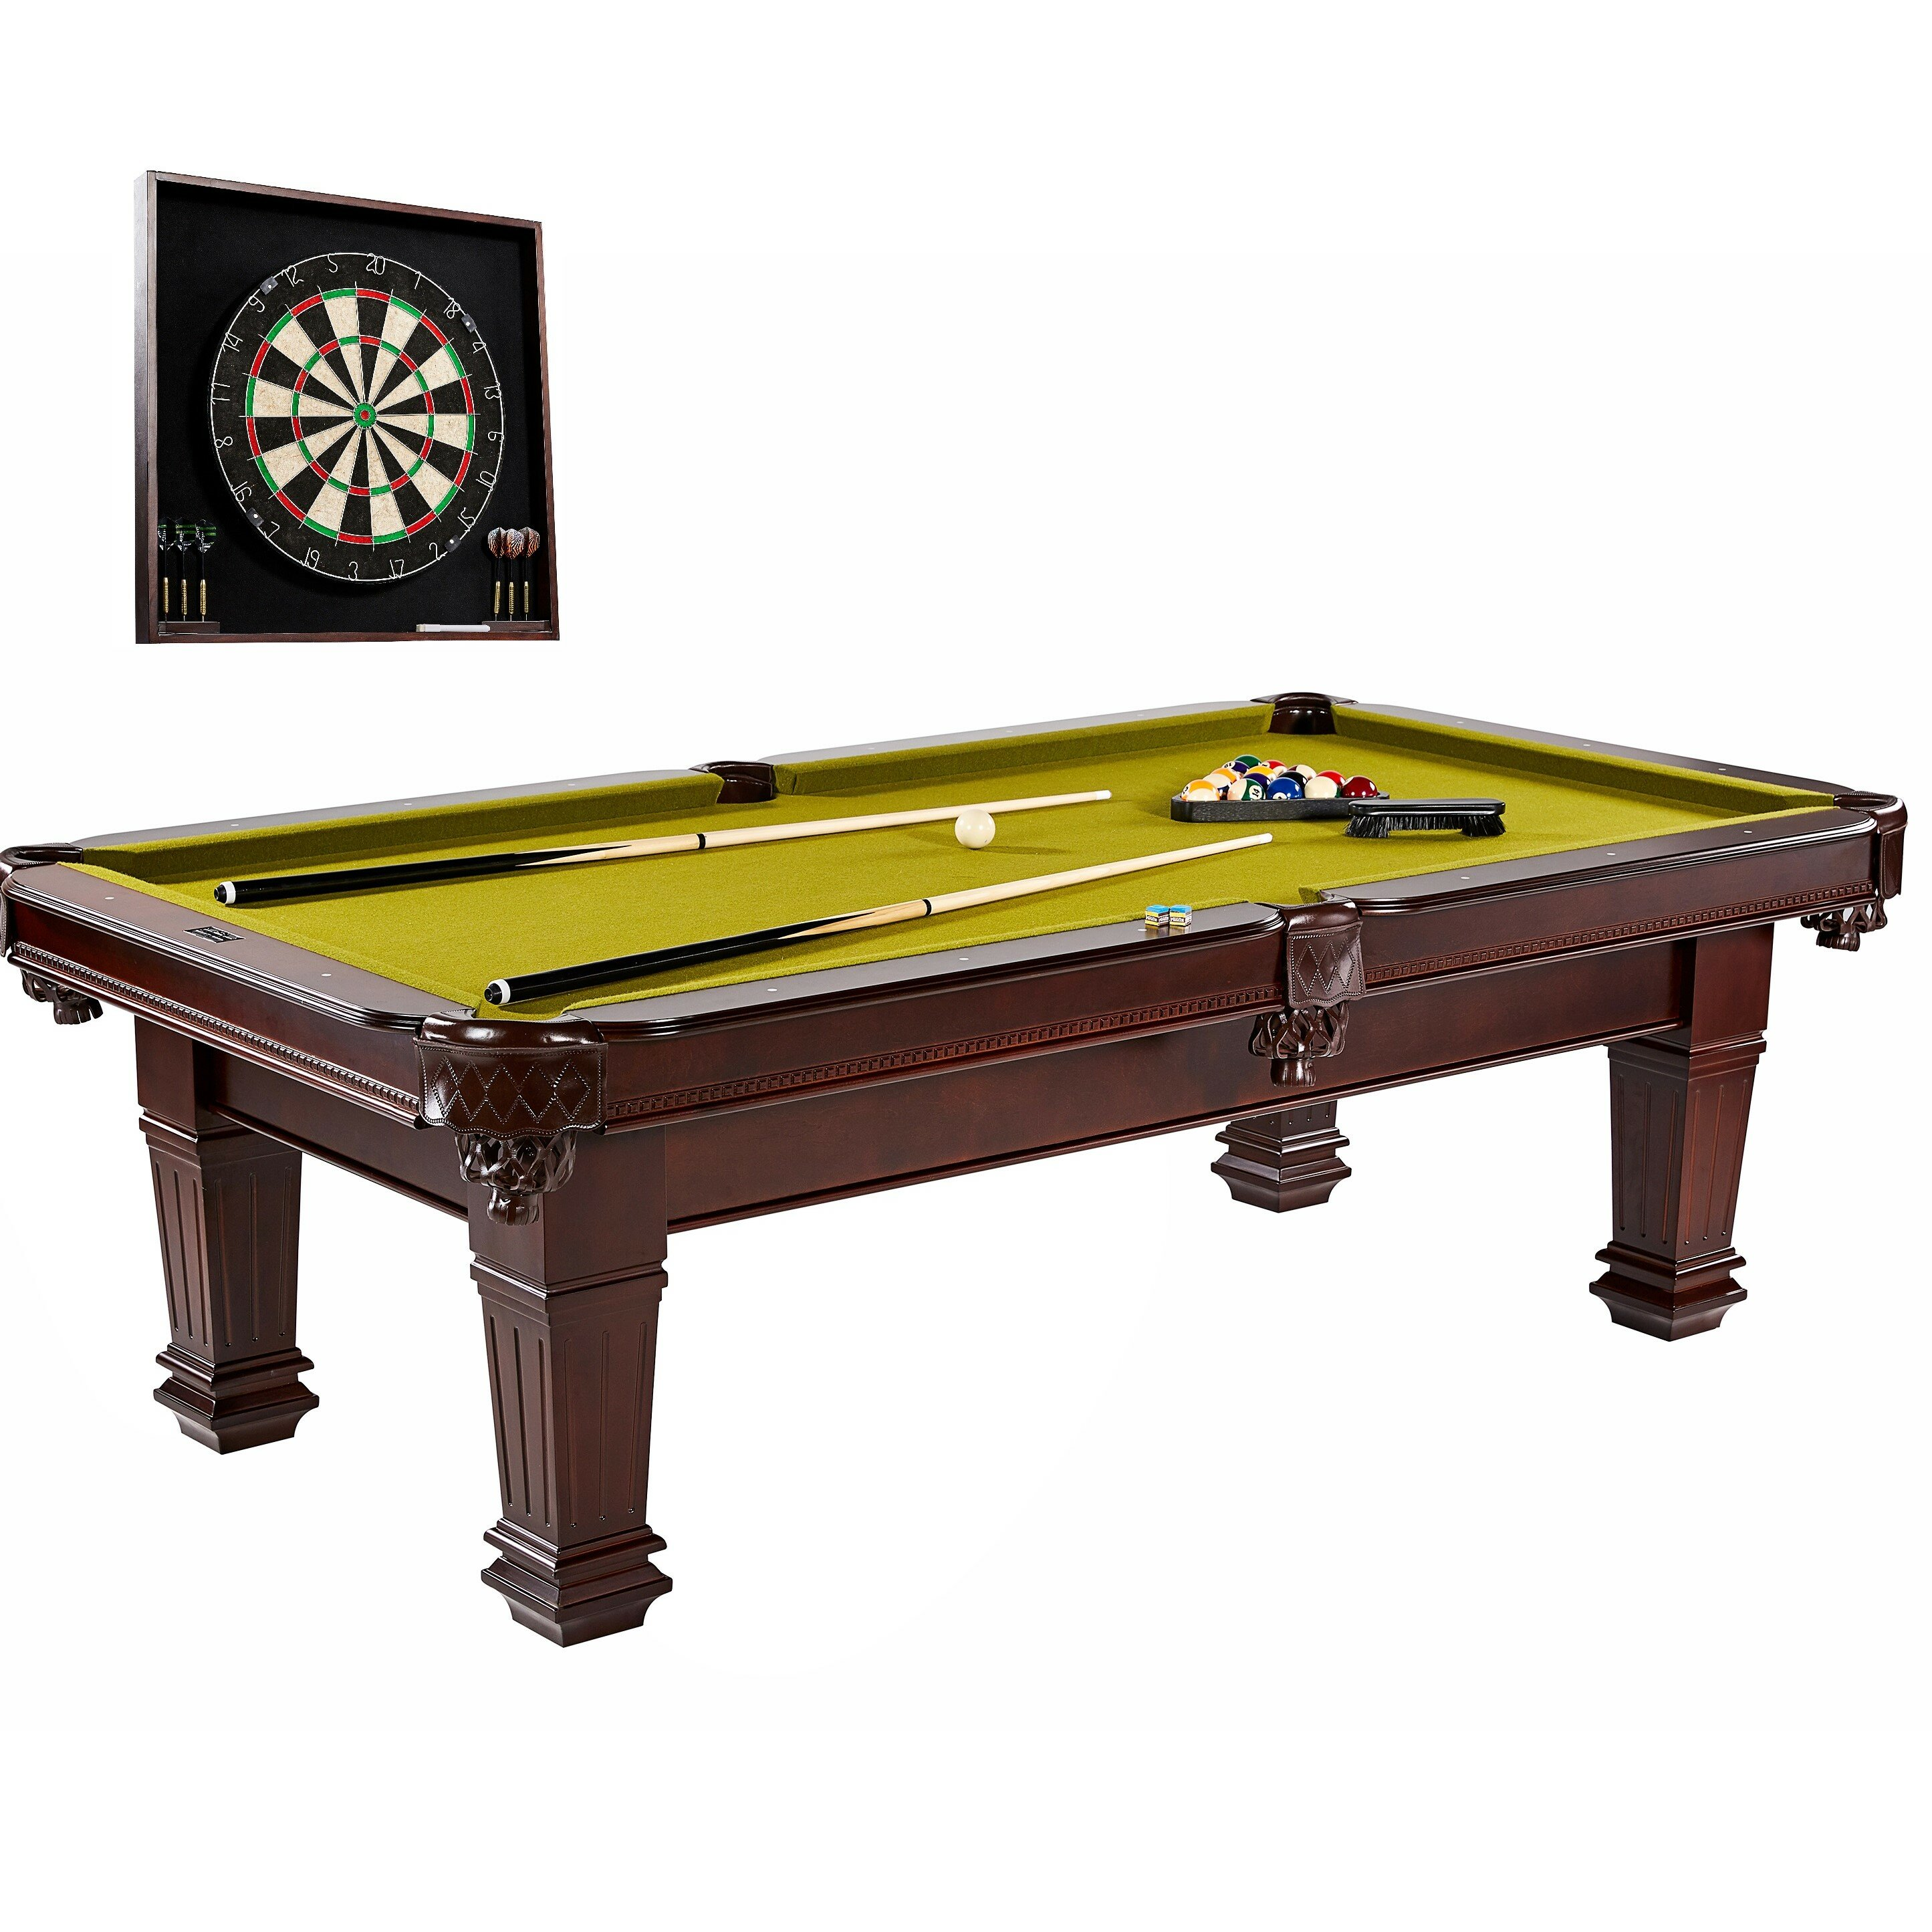 Barrington Billiards Company Hatherley Pool Table With - Pool table cabinet